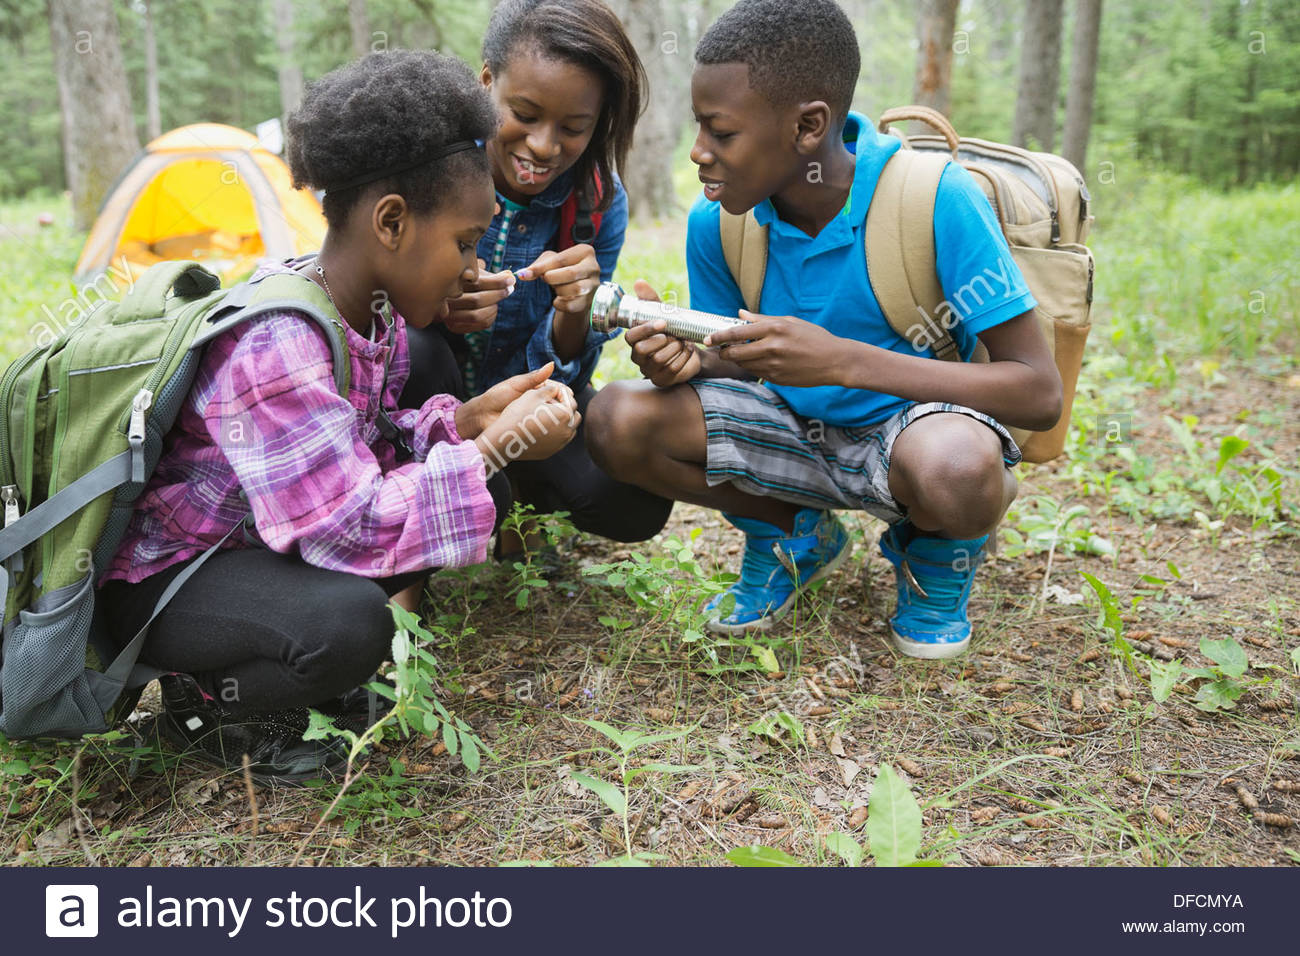 Siblings exploring forest together - Stock Image